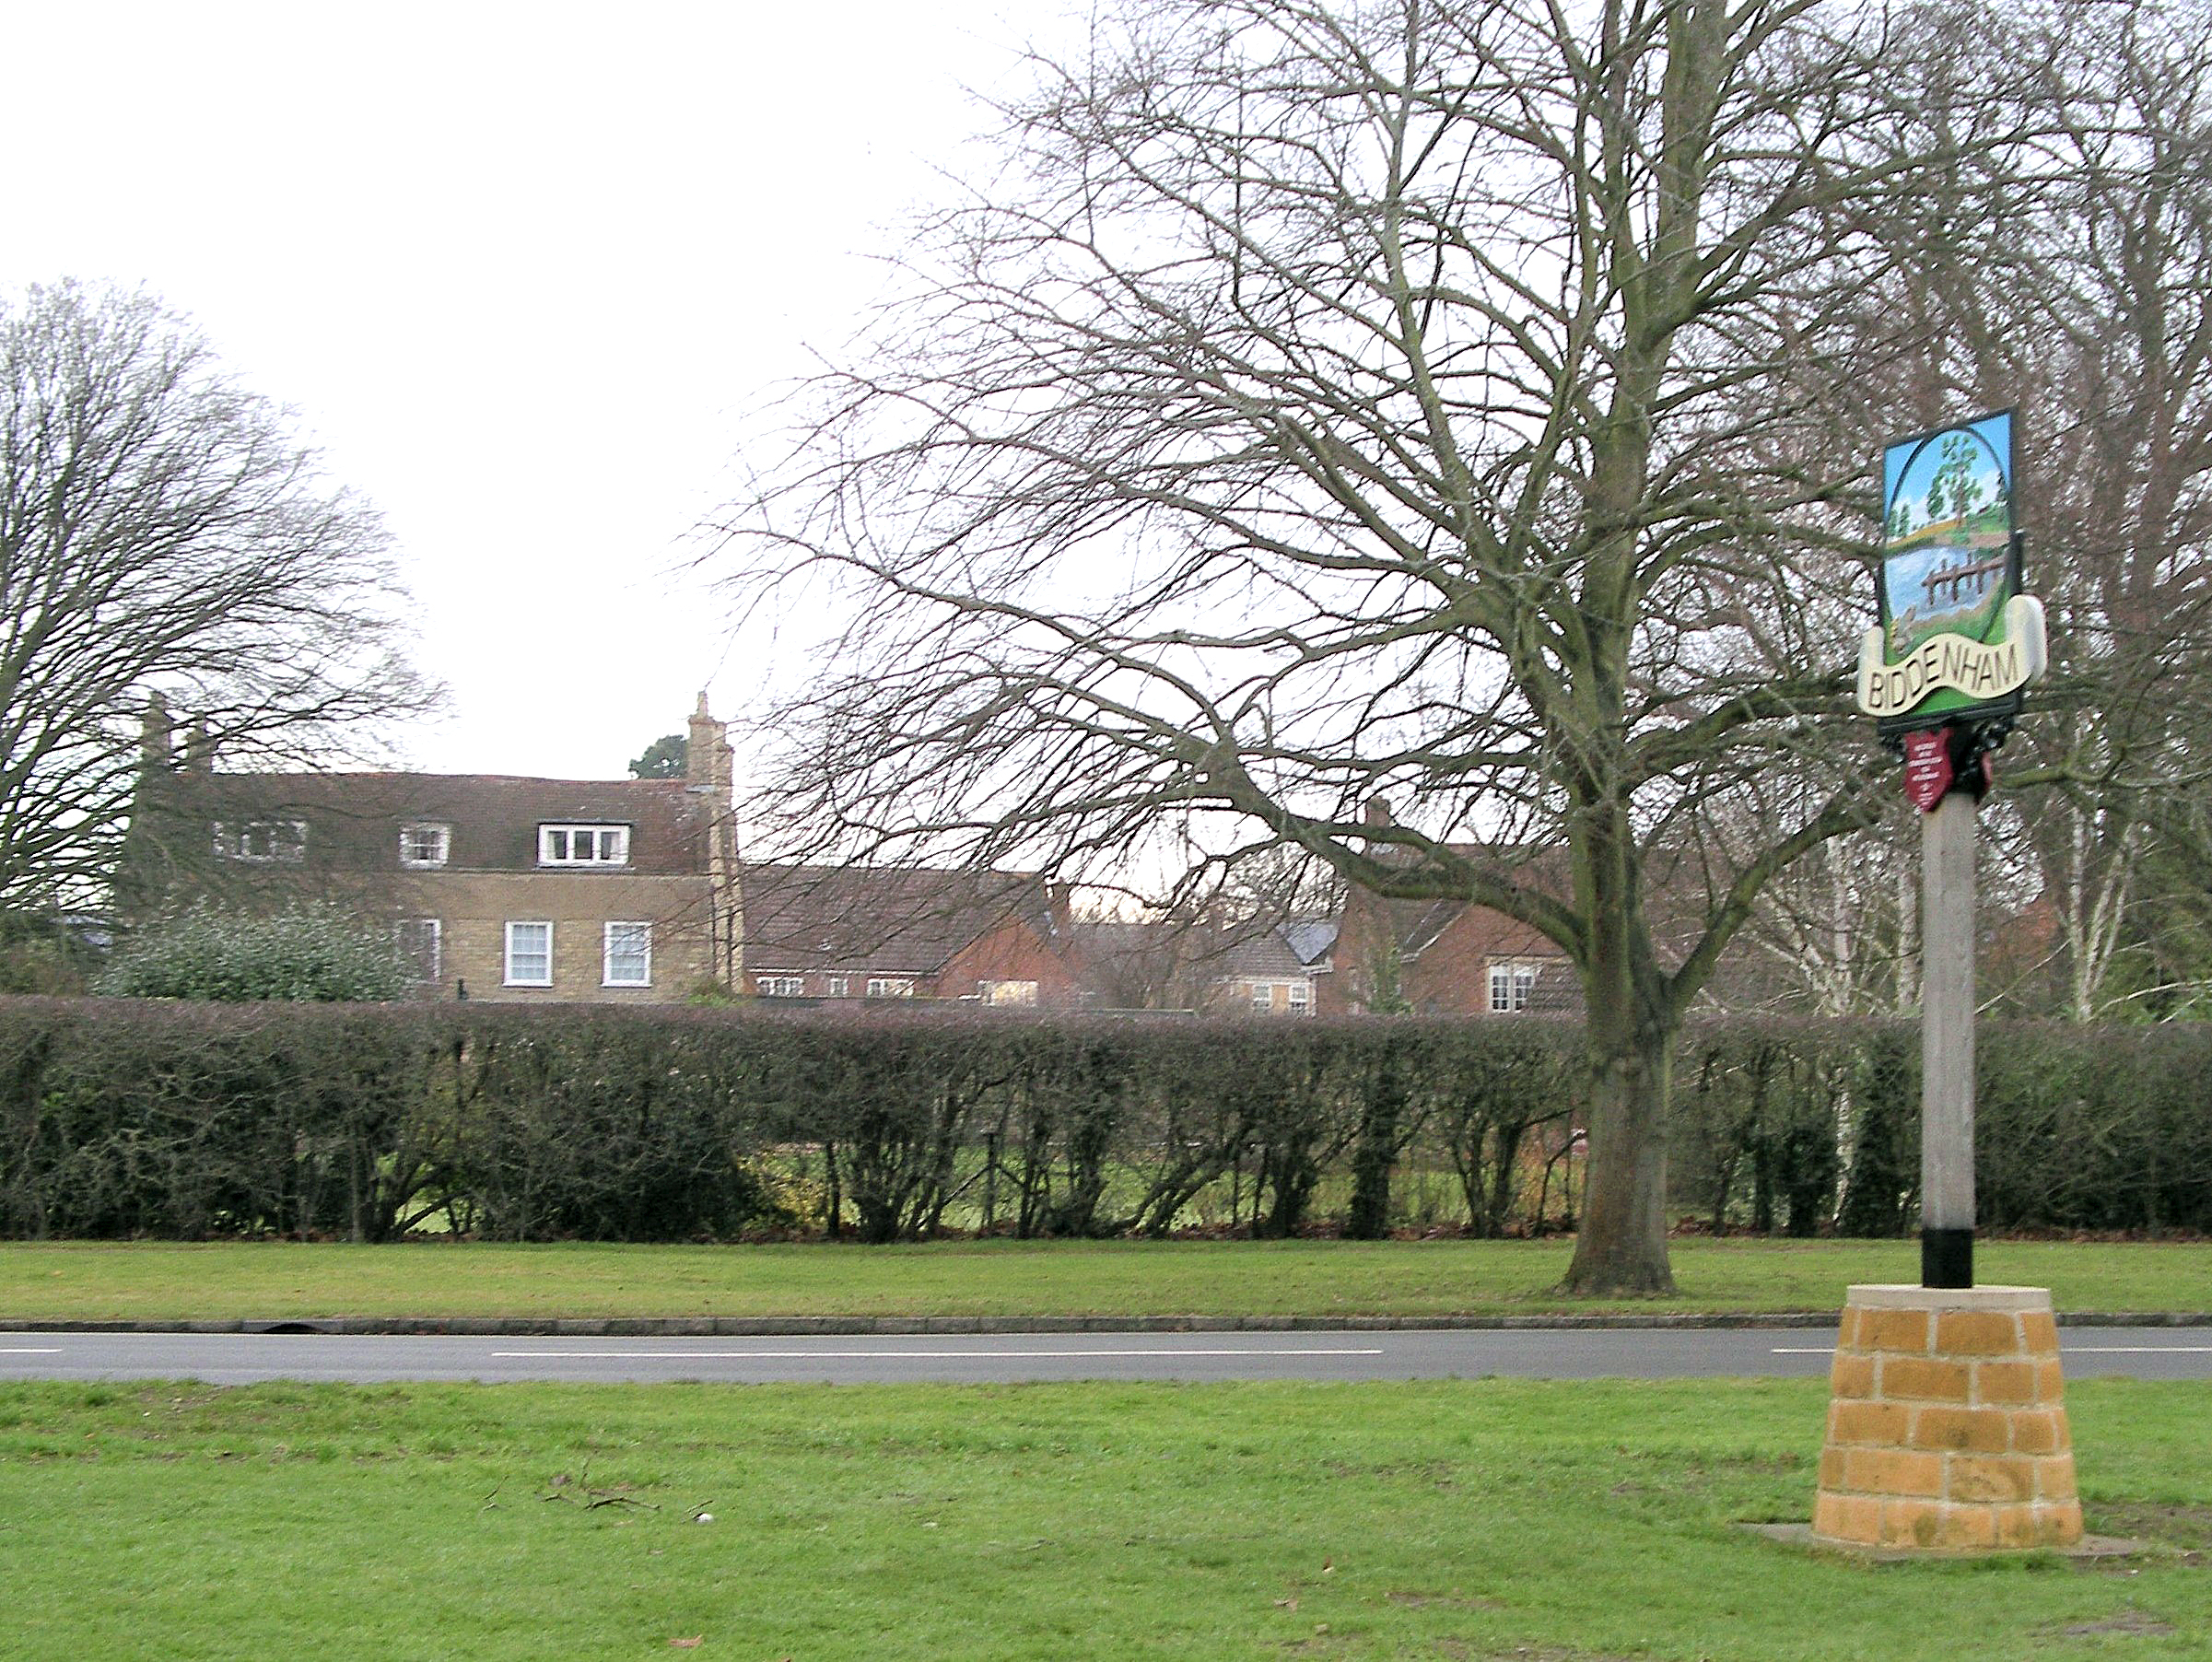 APPLICATION TO DEMOLISH BIDDENHAM HOUSE AND BUILD 8 NEW DWELLINGS ON THE  SITE